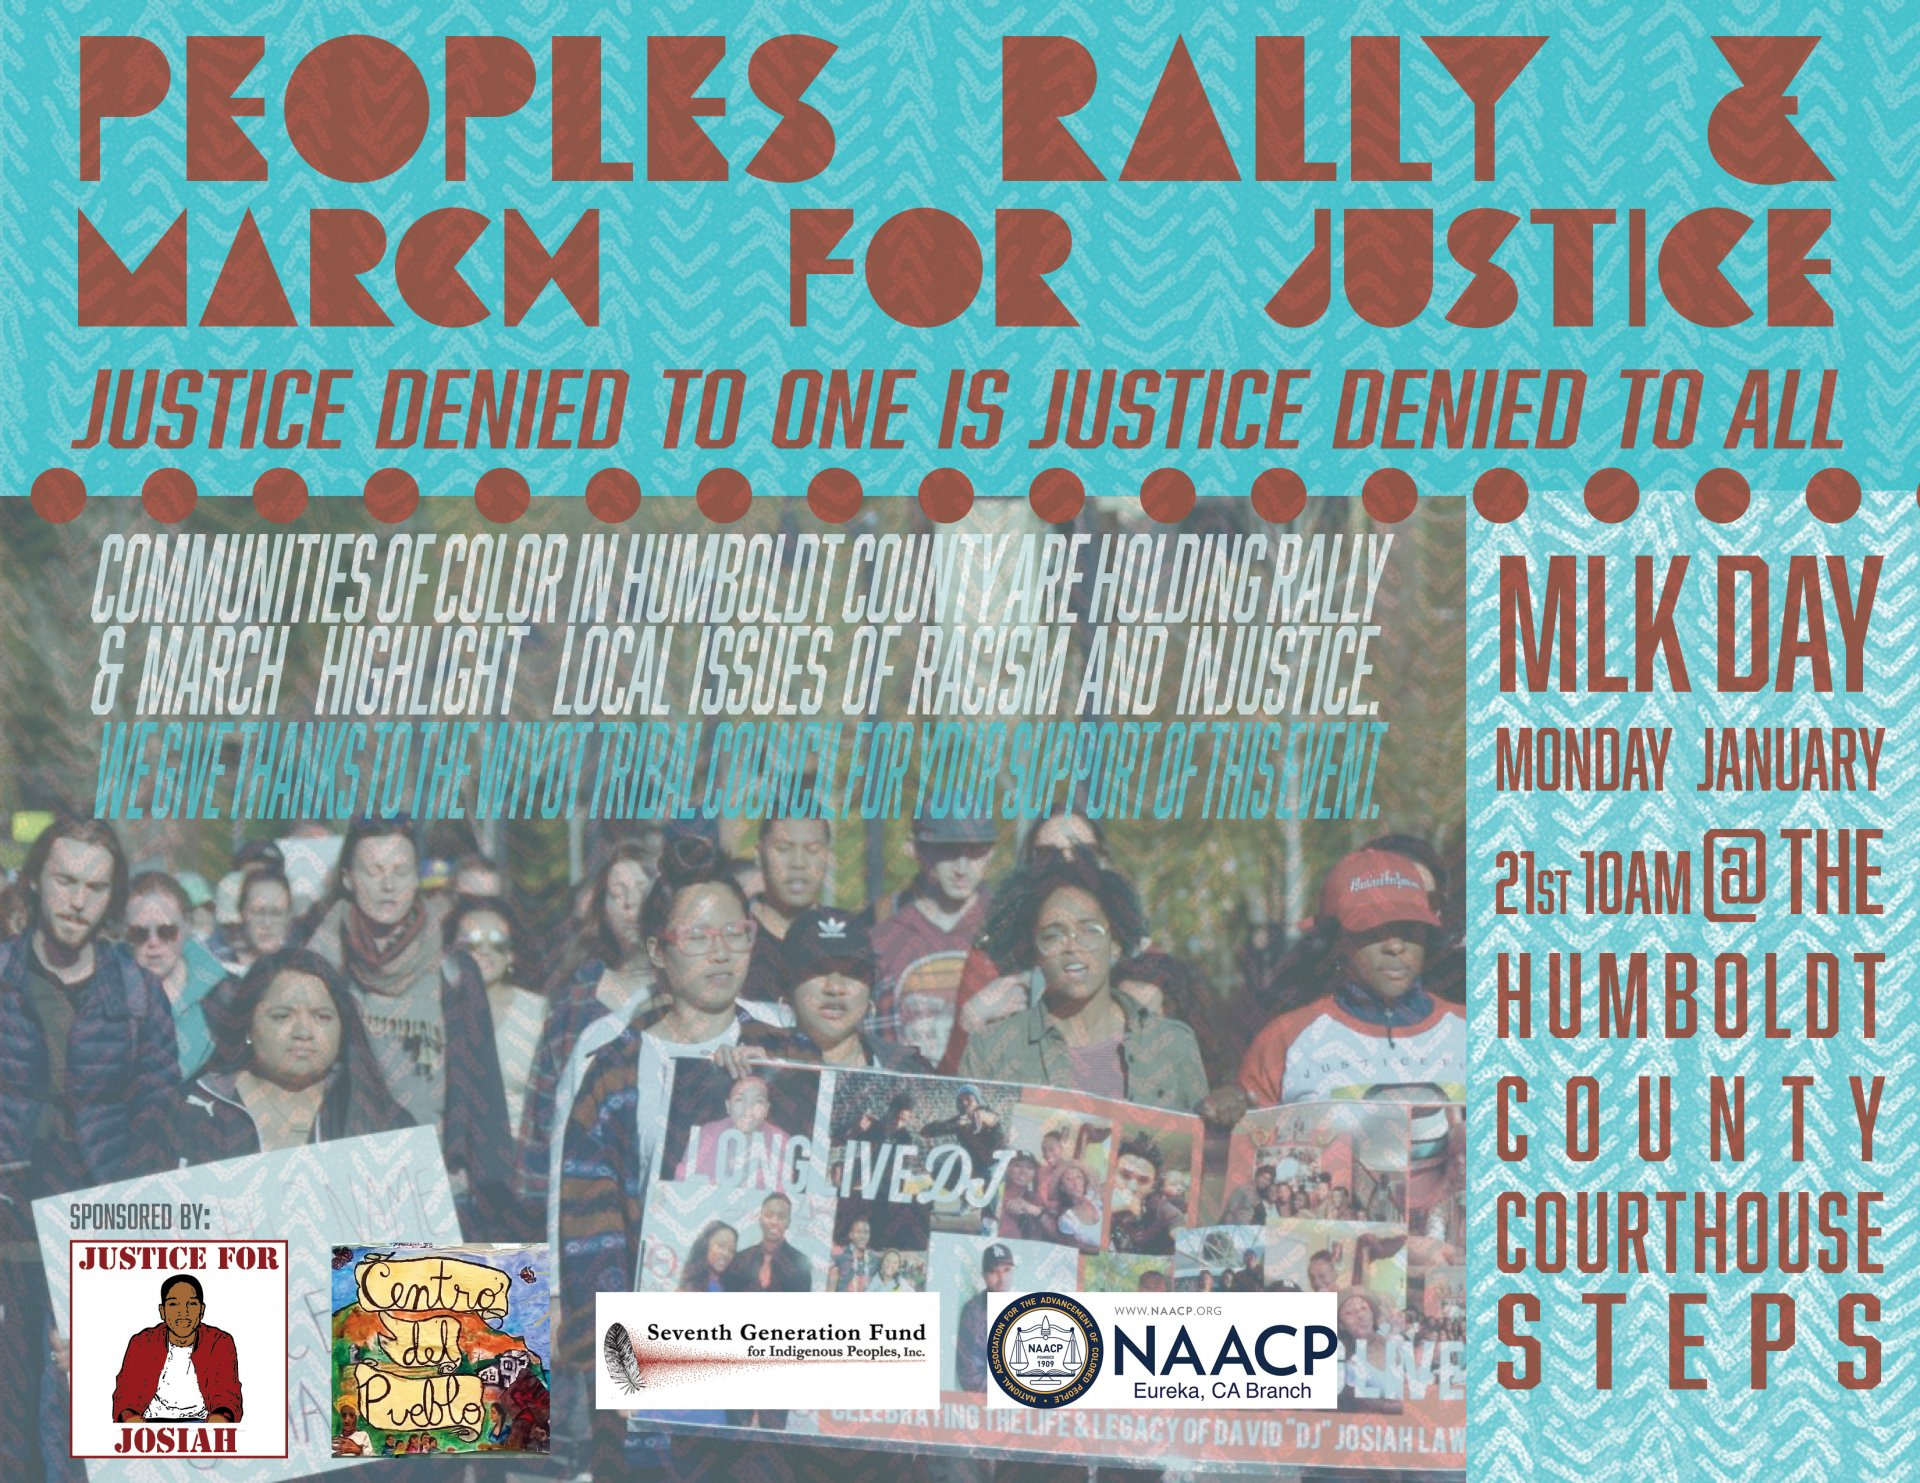 The People's Rally and March For Justice: Justice Denied To One Is Justice Denied To All will be held on MLK day Monday January 21st at 10am at the Humboldt County Courthouse.